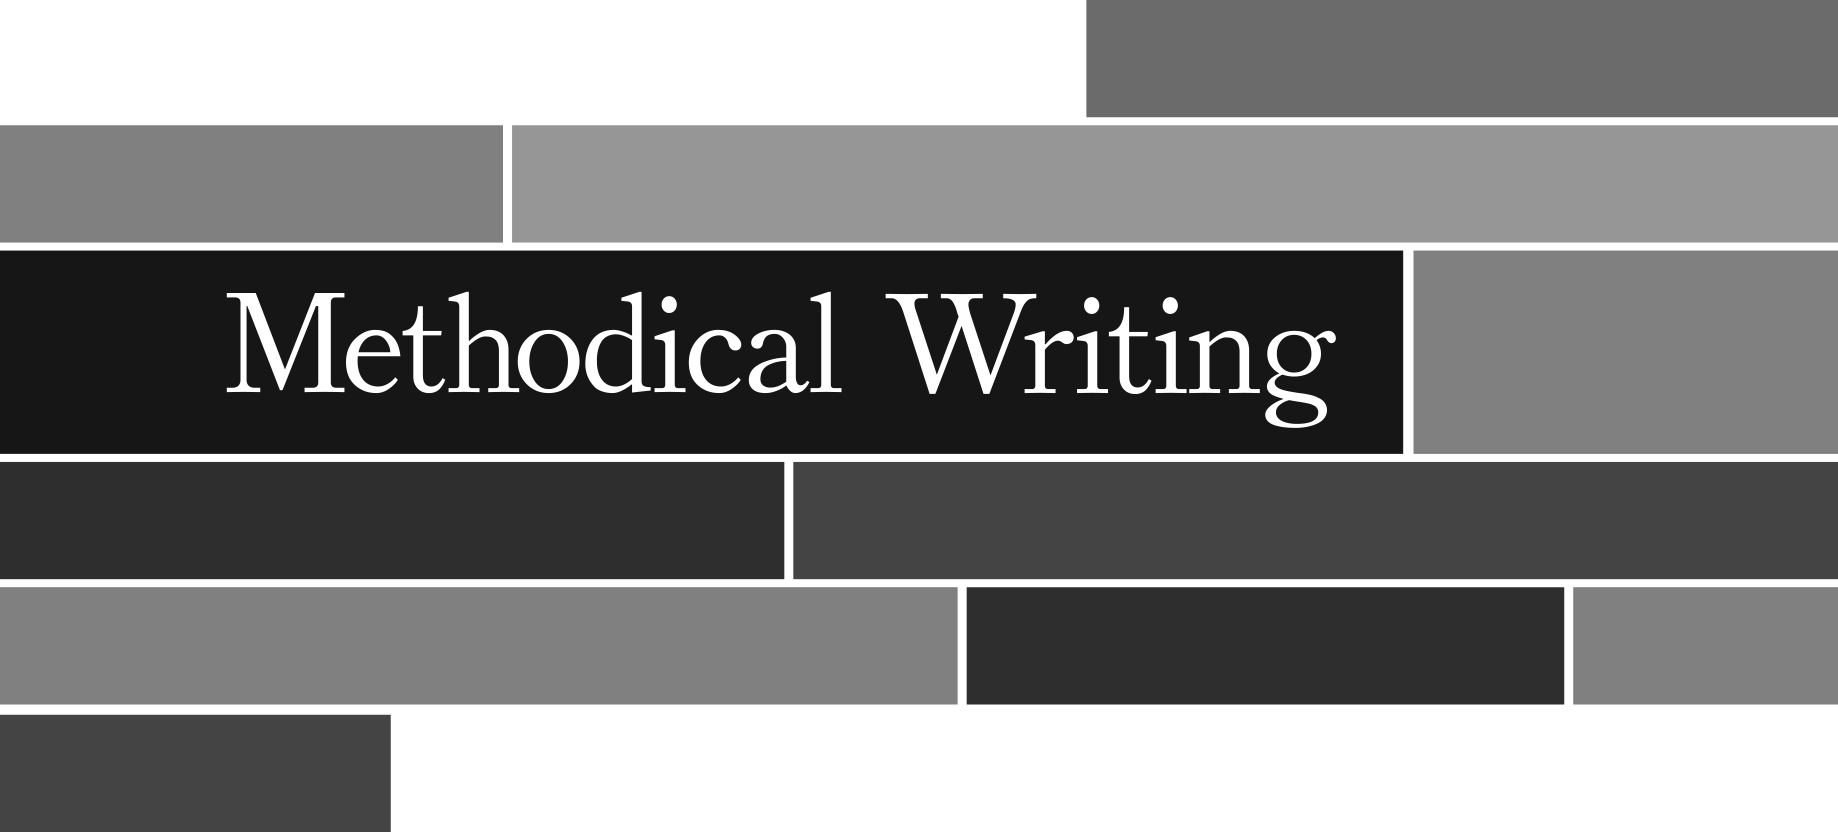 Methodical Writing Workshops